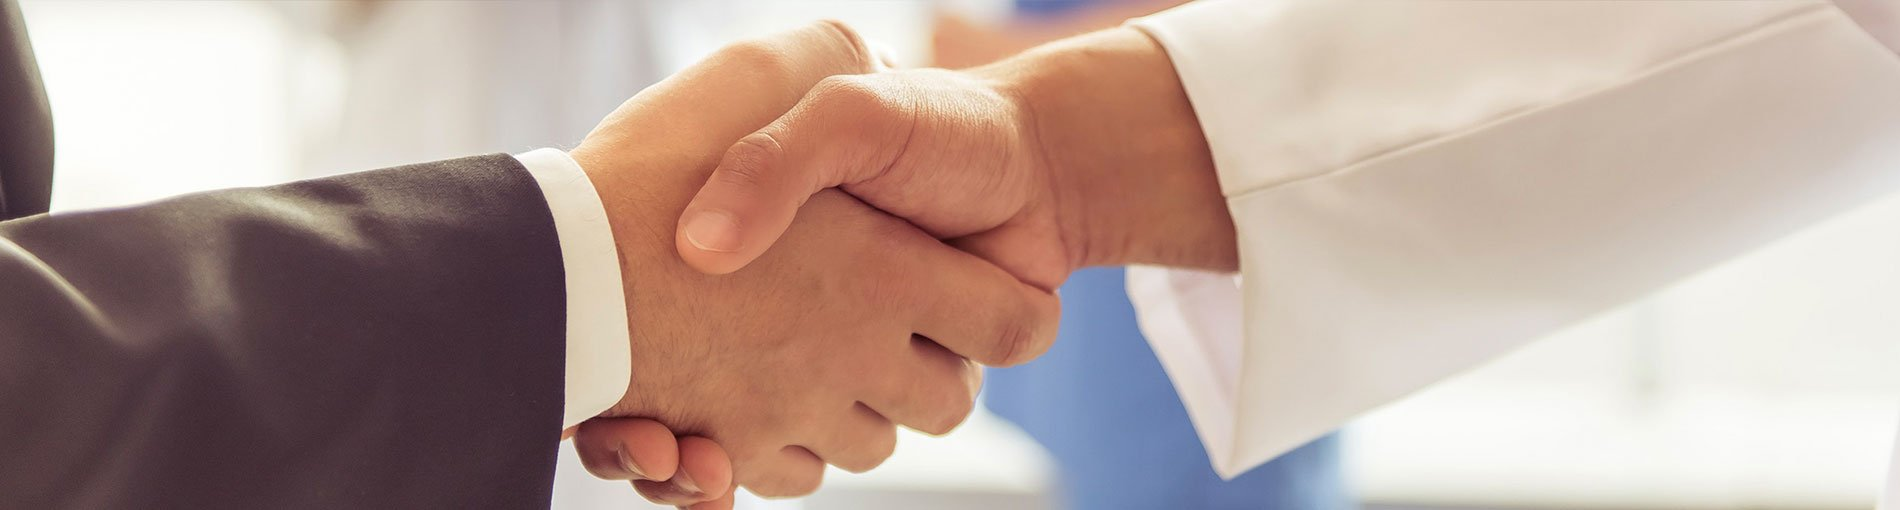 dental finance handshake